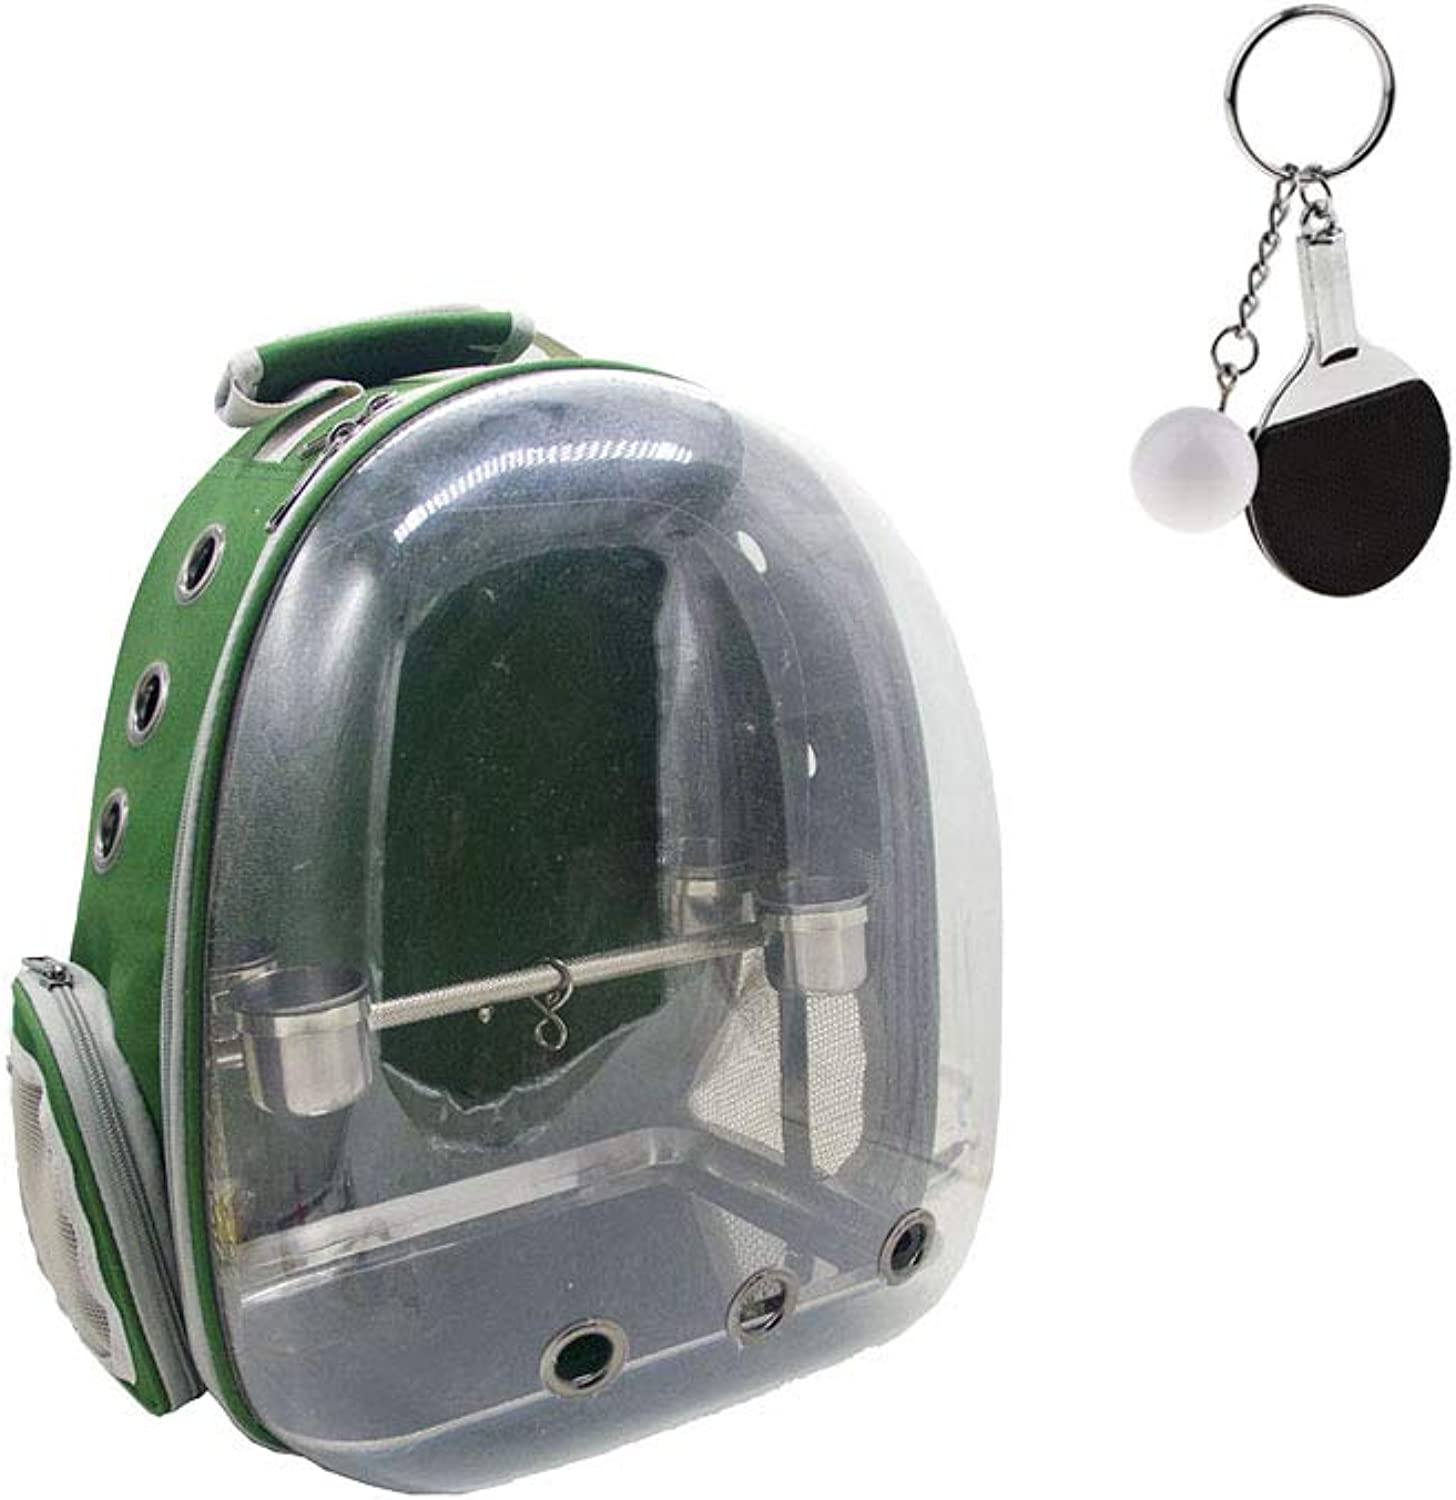 B Blesiya Clear Cover Travel Pet Bird Parred Cage Carrier Green with 1 Set Perch Cup & Keychain